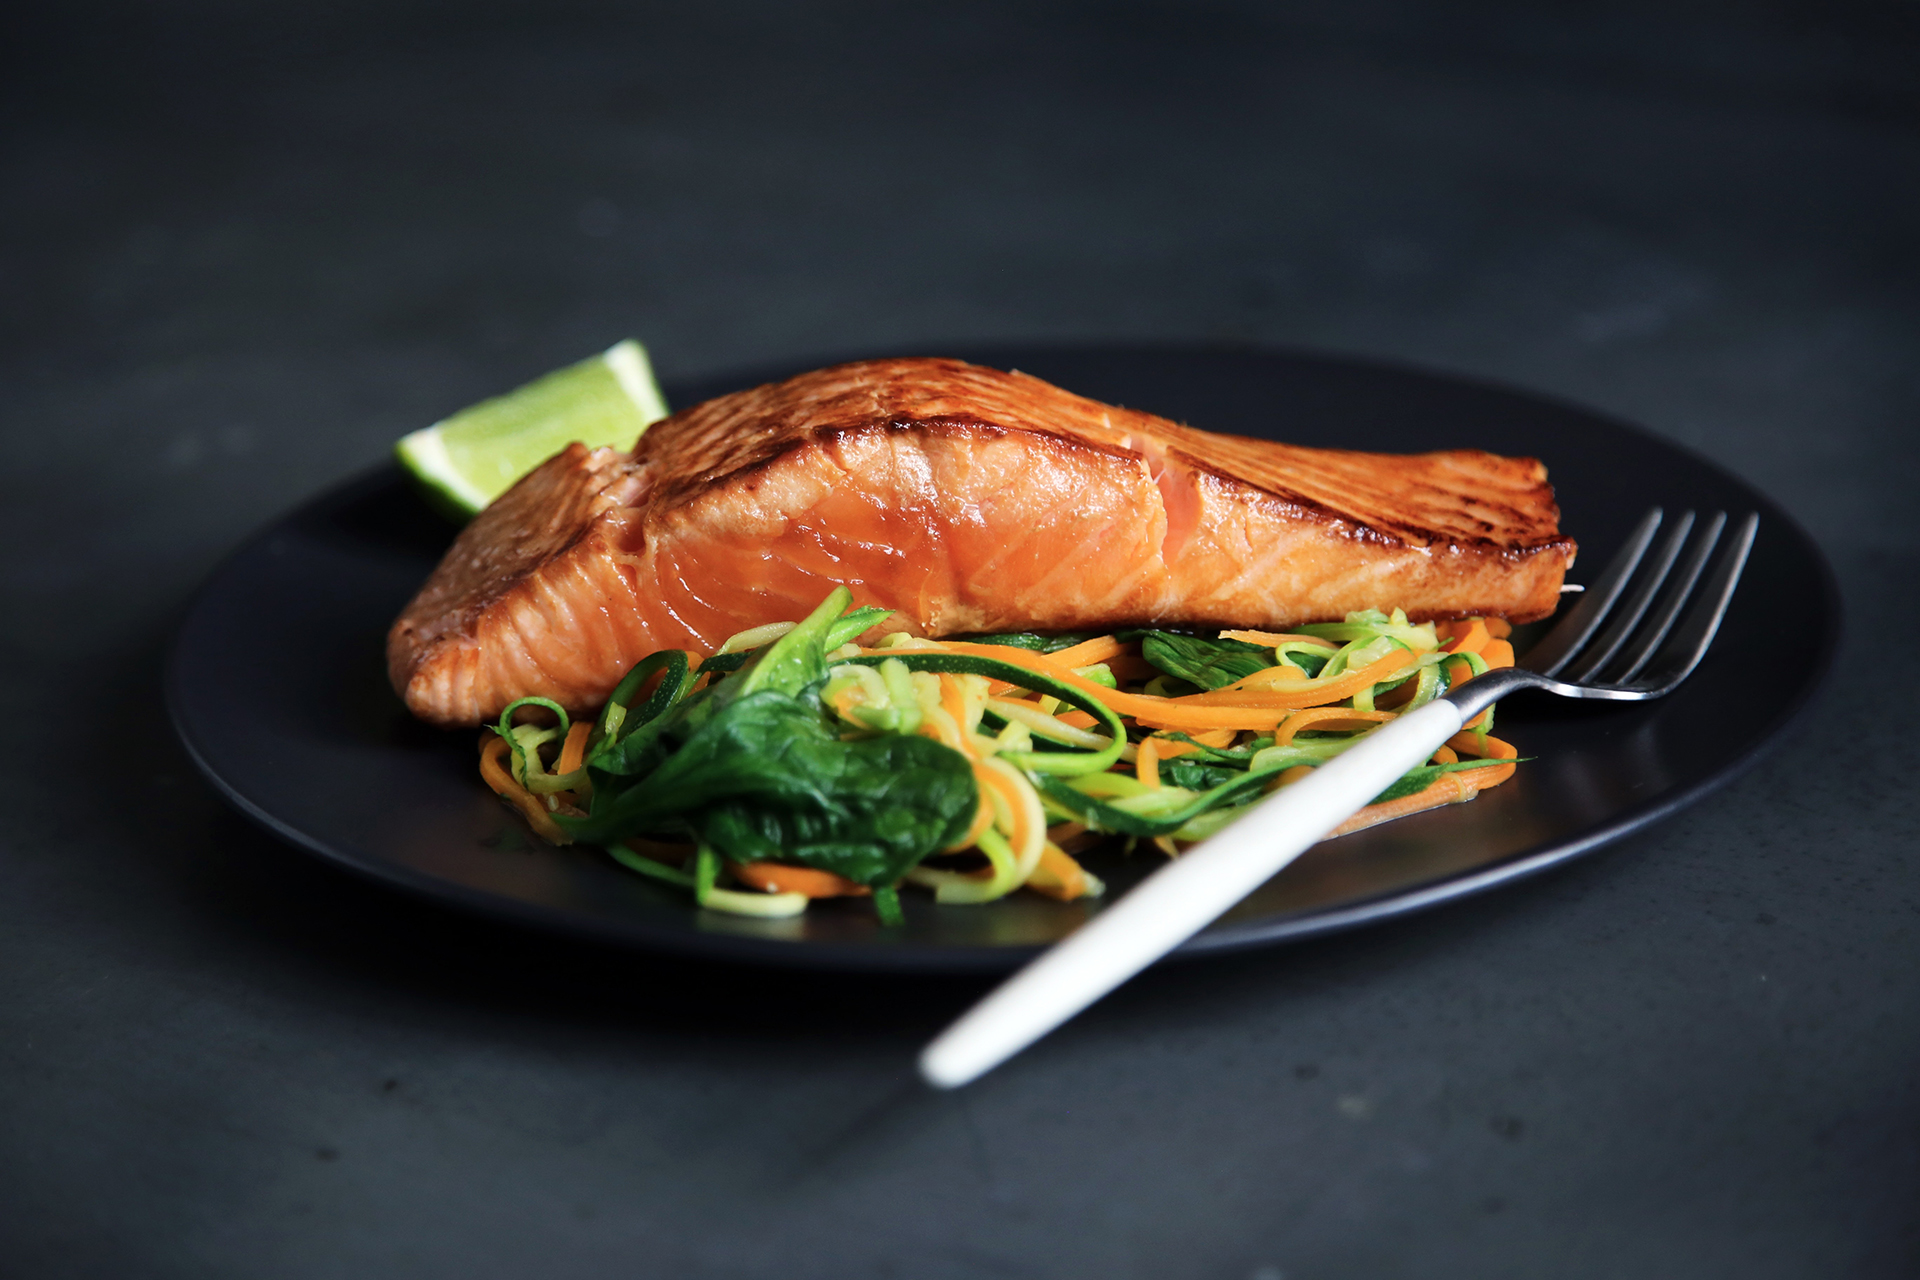 a photo of a black plate with a fork, a piece of cooked salmon, and vegetables